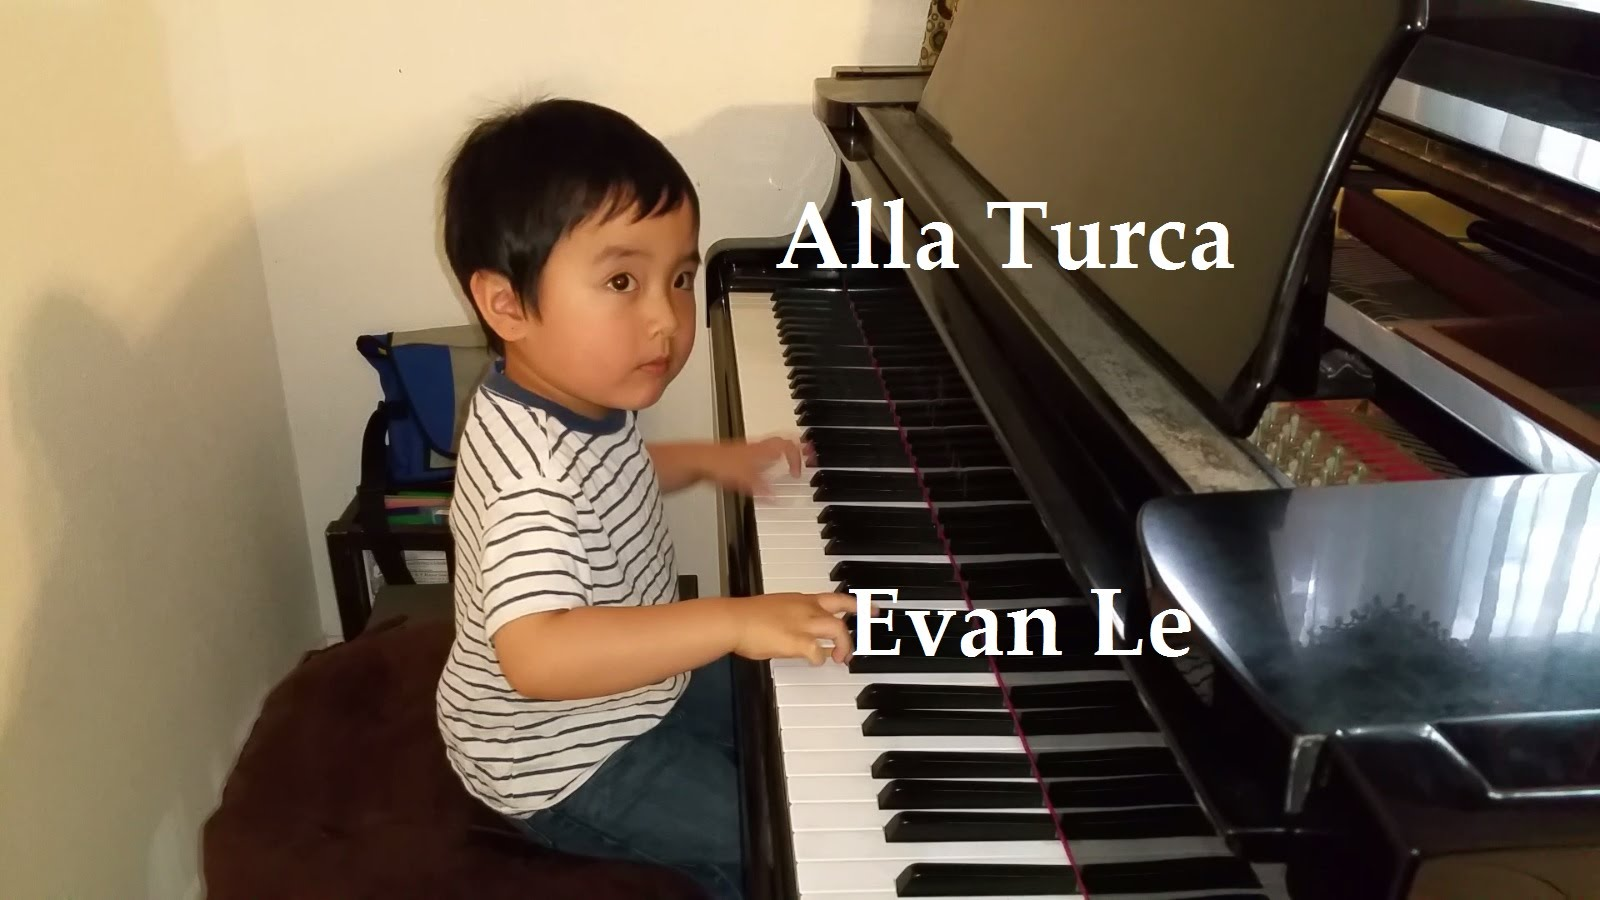 Evan Le – Child Prodigy Pianist Evan Le Plays Alla Turca